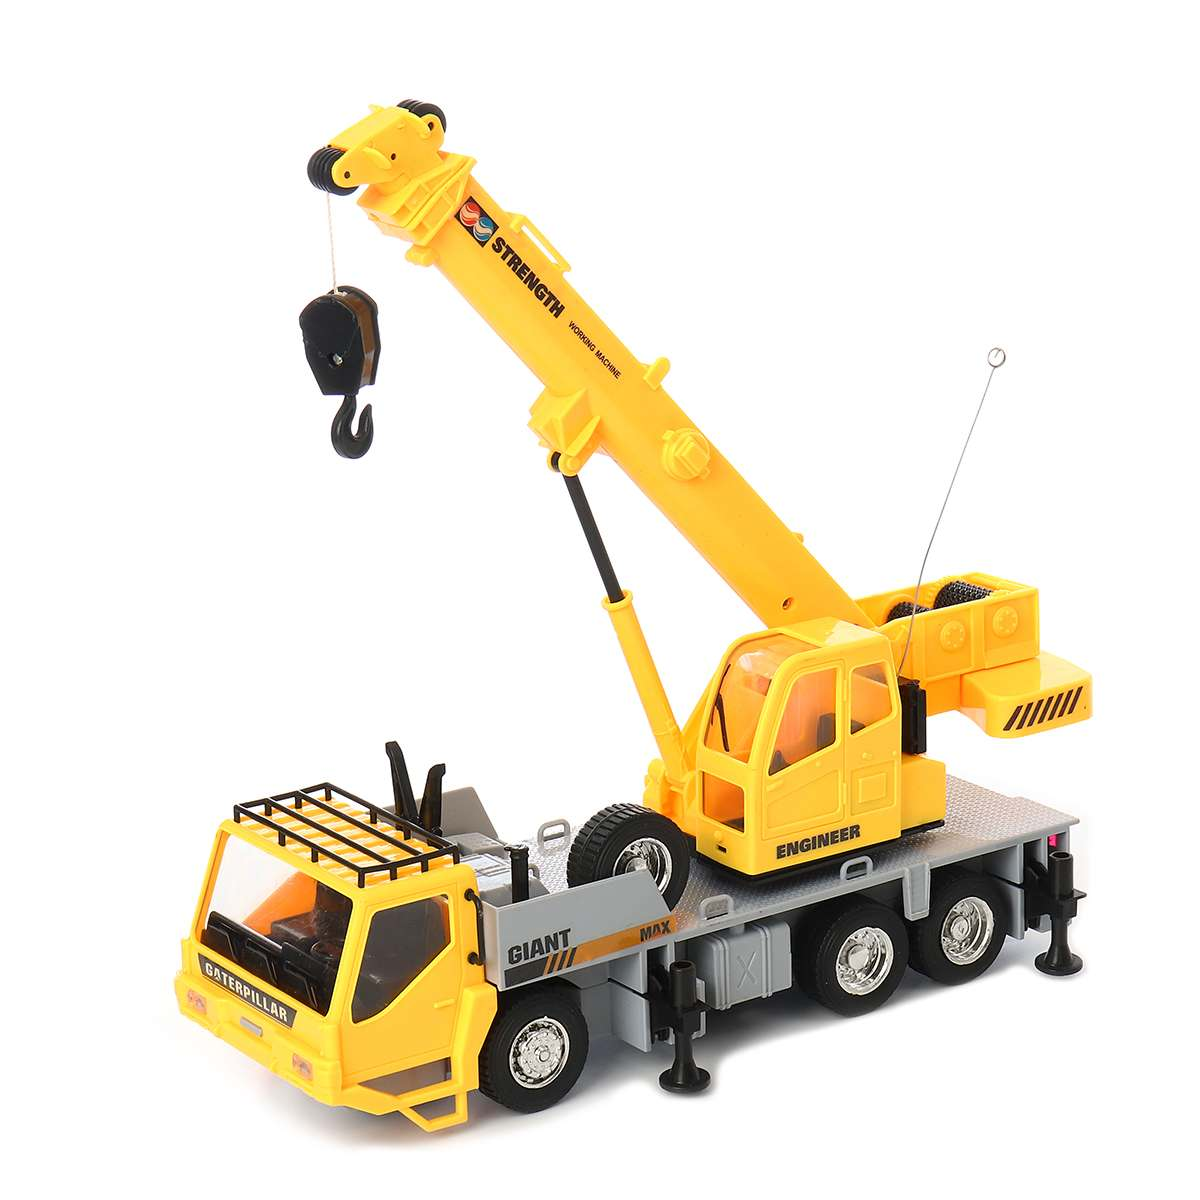 Kids RC Car Construction Remote Control Truck Crane Toy Model Engineering Excavator Vehicles Tower With Light Sound Toys Gift